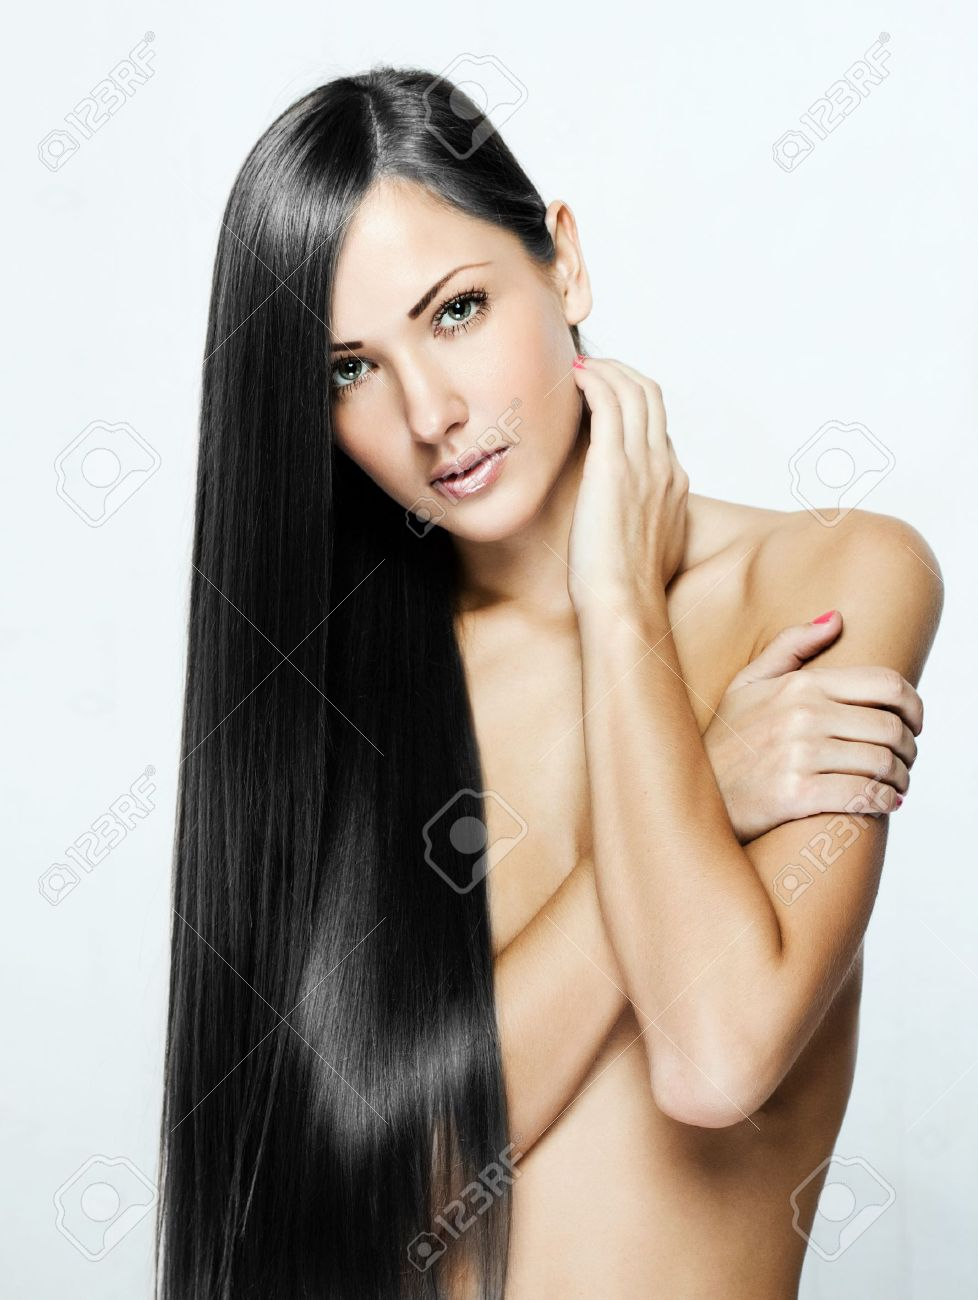 black hair , beautiful brunette woman with long natural hair , hairstyle. Stock Photo - 16011586